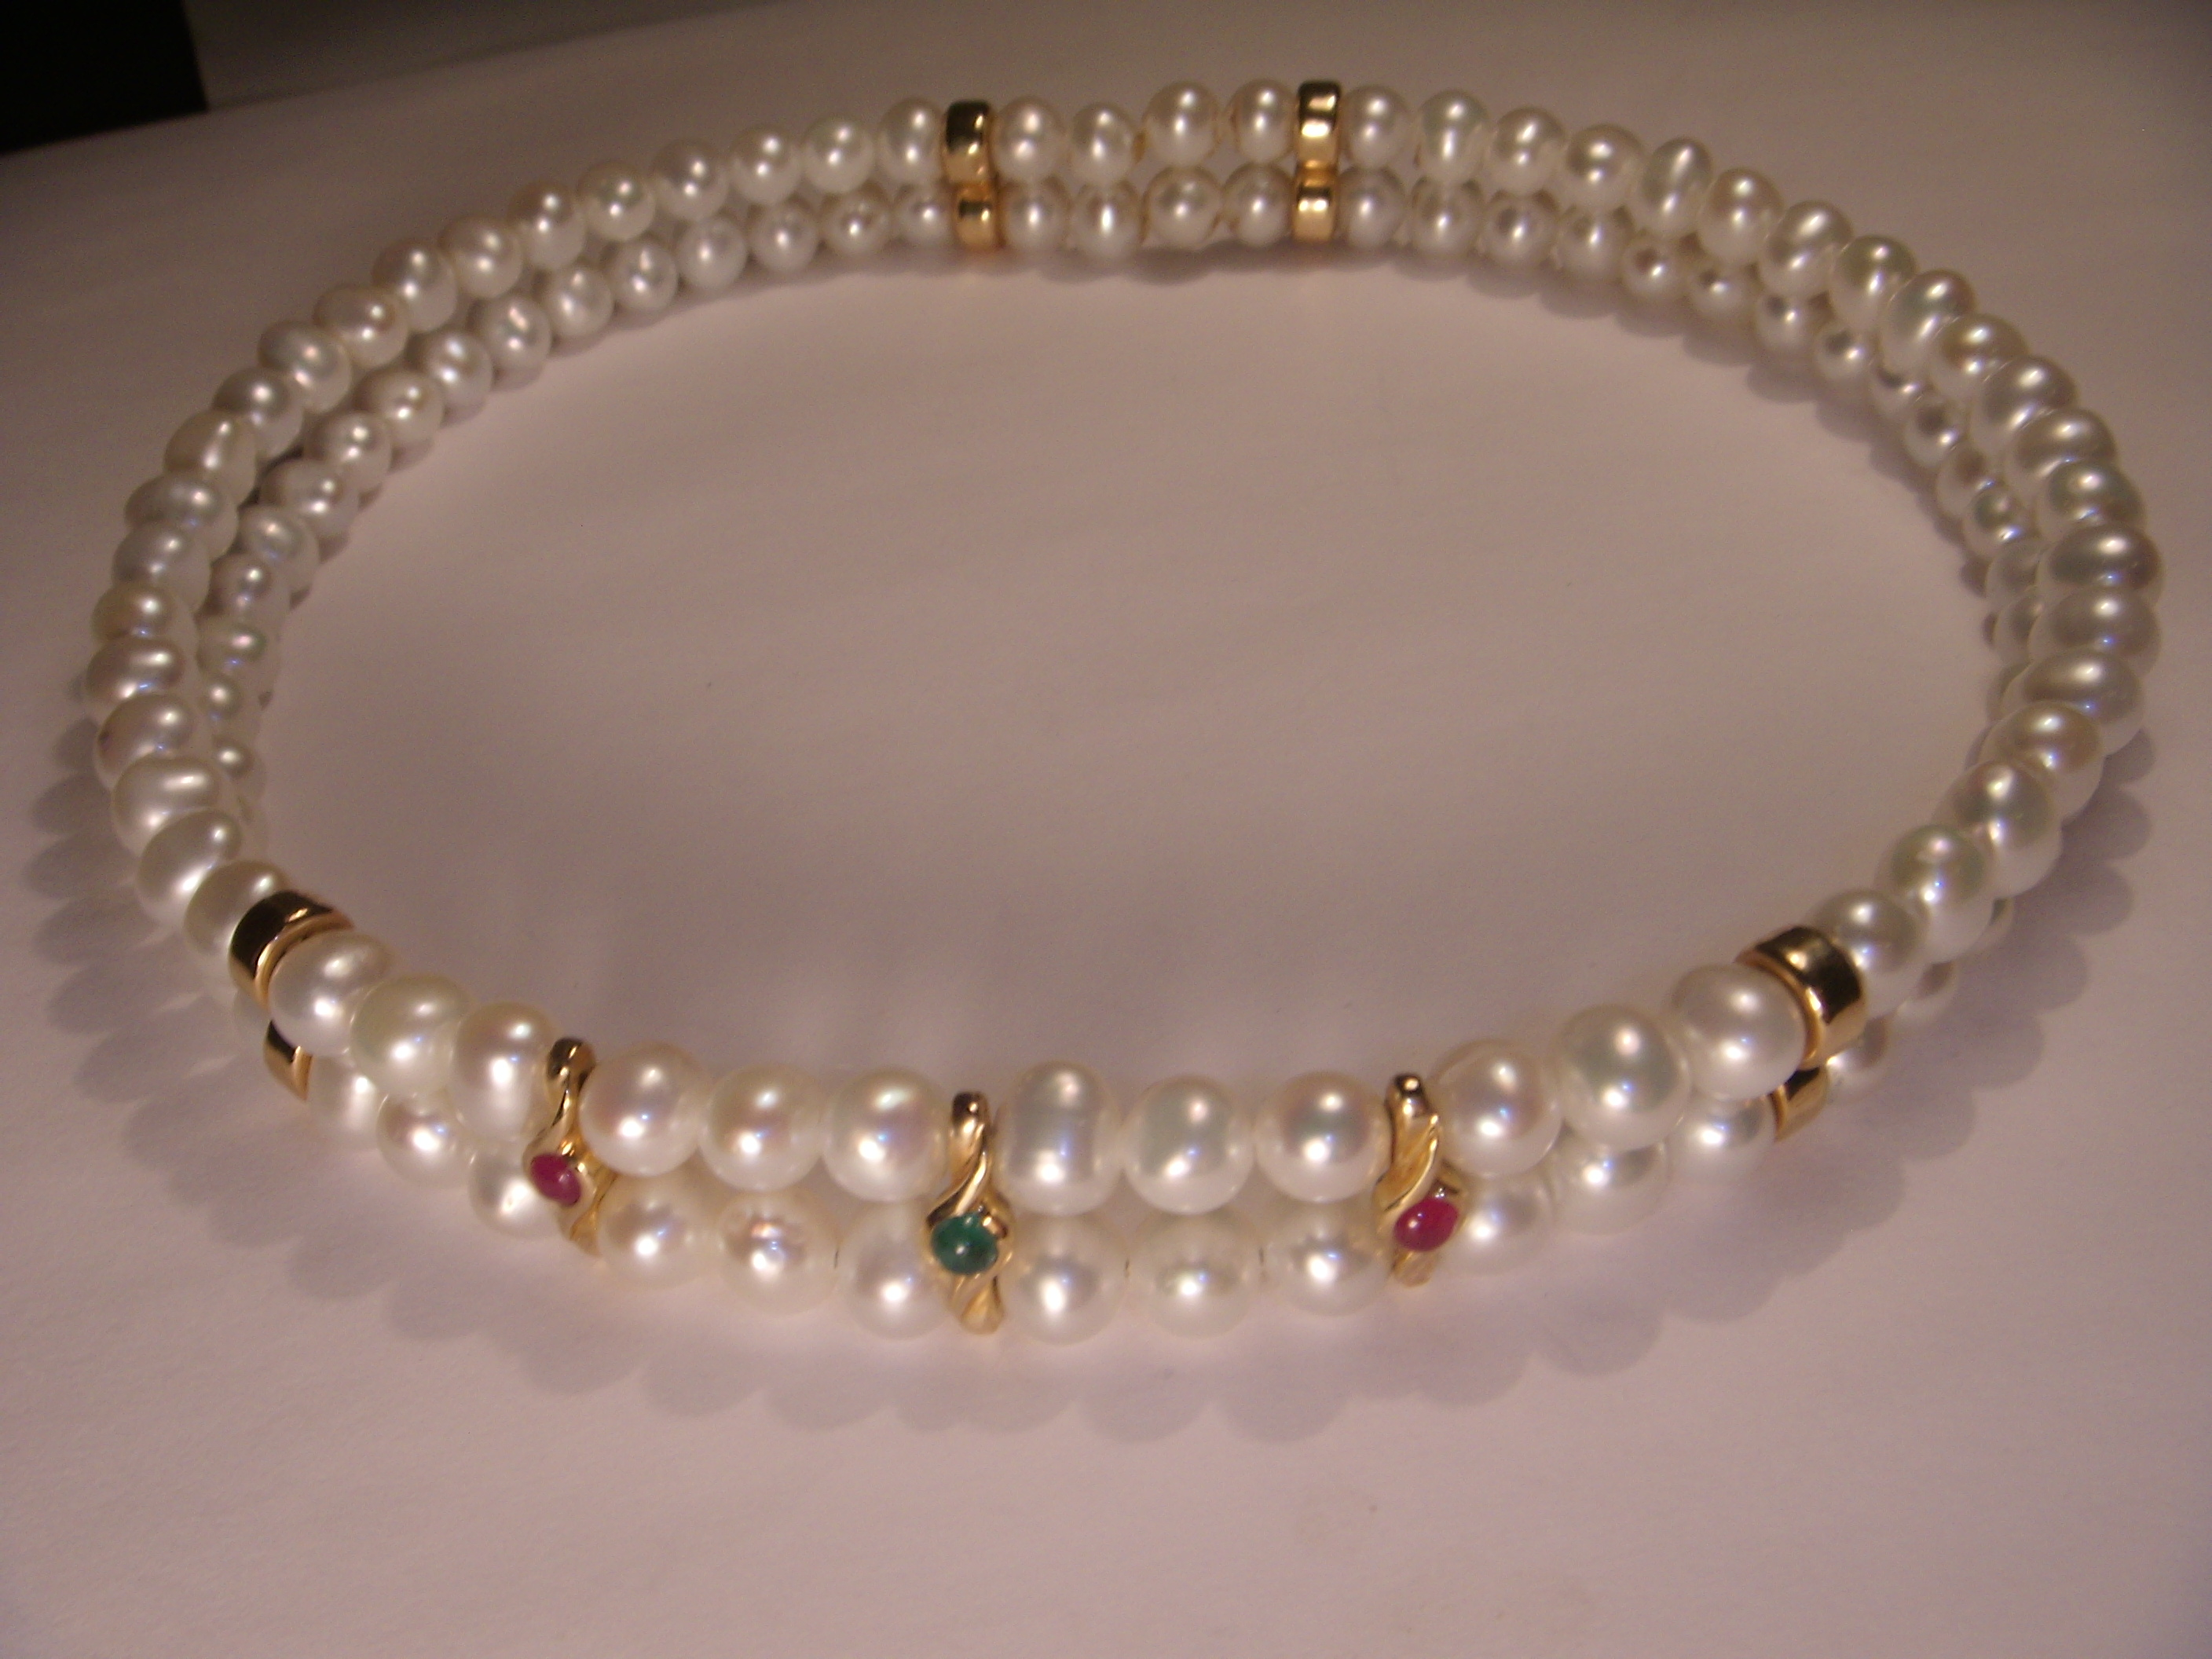 Unique 14k Yellow Gold Pearl Emerald Ruby Designer Chocker Necklace This  Stunning Piece Features Double Row Of Pearls With Cabochon Rubies And  Emerald